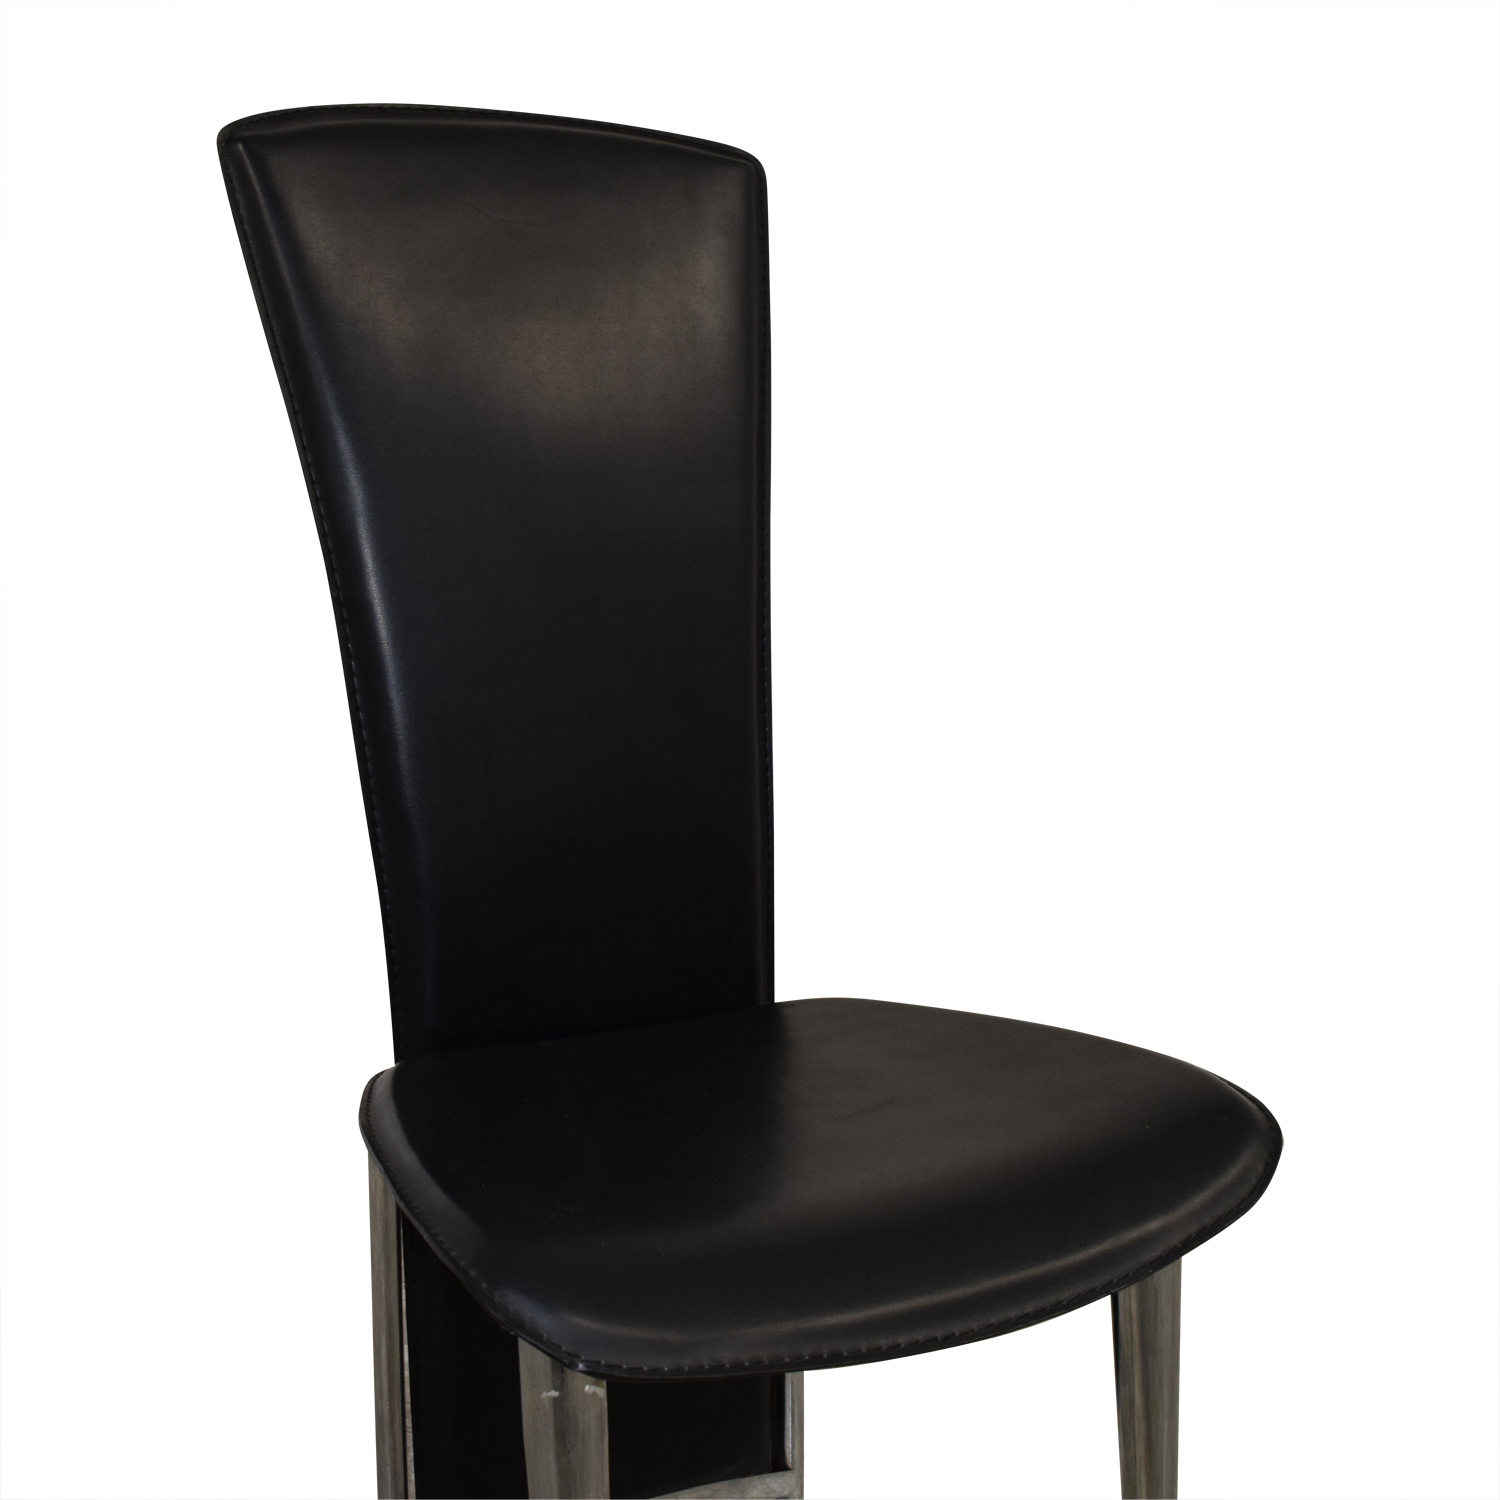 High Back Black Chair used